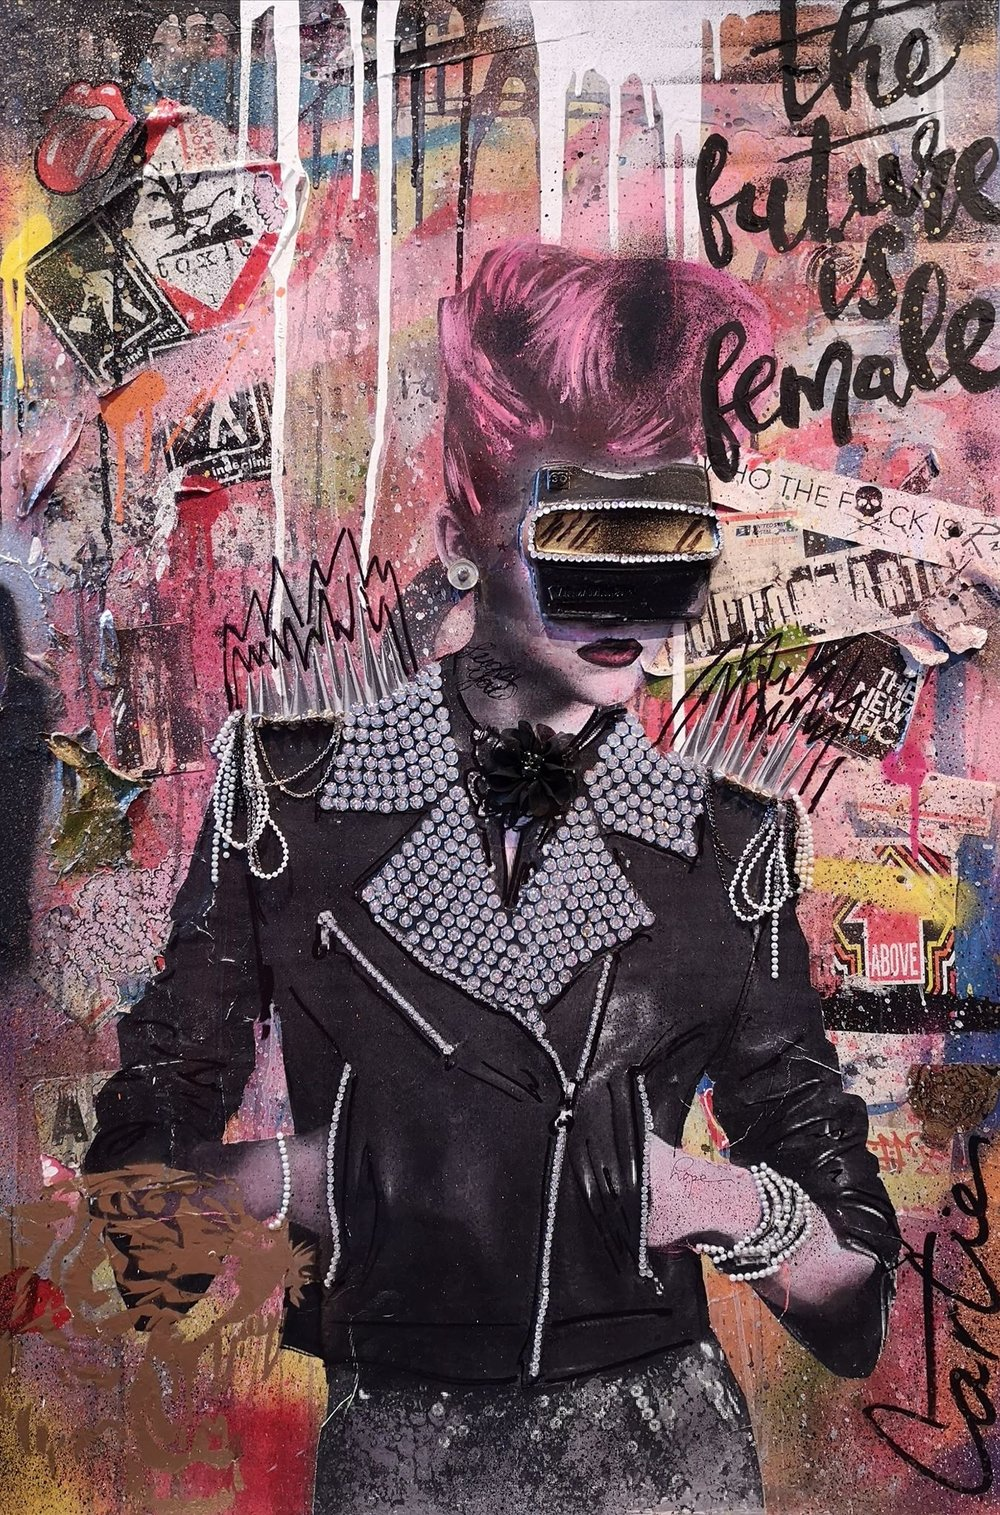 """She represents the future""   Mixed media on canvas / Technique mixte sur toile  24x36   Contact for inquiries / Contactez-moi pour achat"